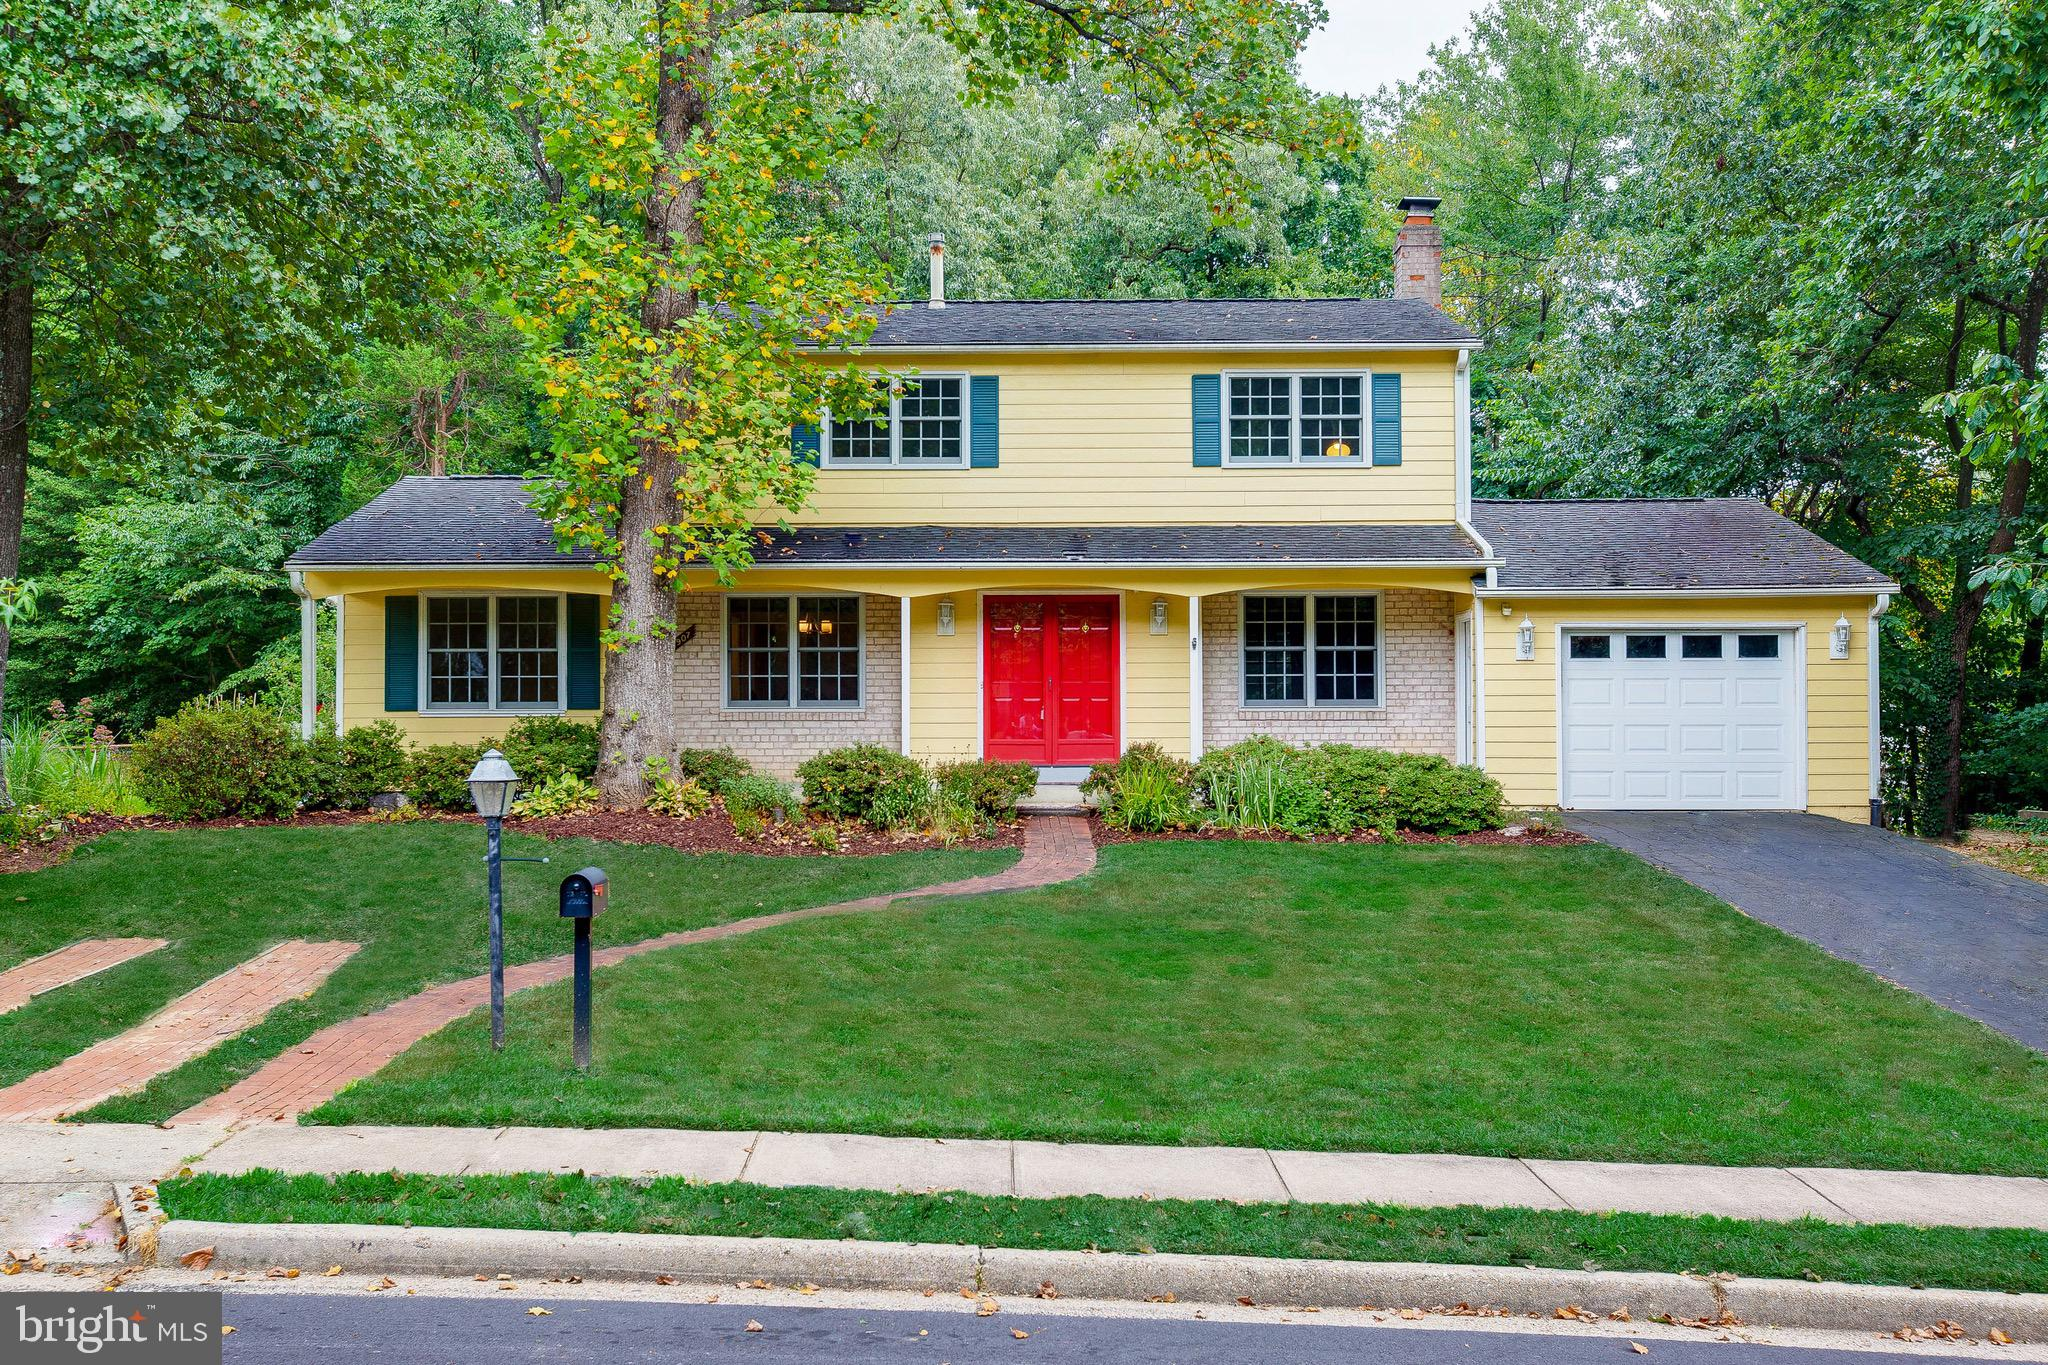 Rare to find, Great Location, Well Maintained, Huge Fenced Backyard 0.3 Acre, in Orange Hunt, Springfield. Total 5 Bedroom 3 full Baths. Main Level Master Bedroom and Luxury Master Bath. Costume Design Kitchen, Stainless Steel Appliances. Large Living Room with Fireplace and Dining Room. Upper Level have 4 Bedroom, Master Suite with Walk In Closet and Master Bath. HardWood Floors all over the house. New Vinyl Windows with Interior Wood Finish. Newer HVAC and Hot Water Heater.